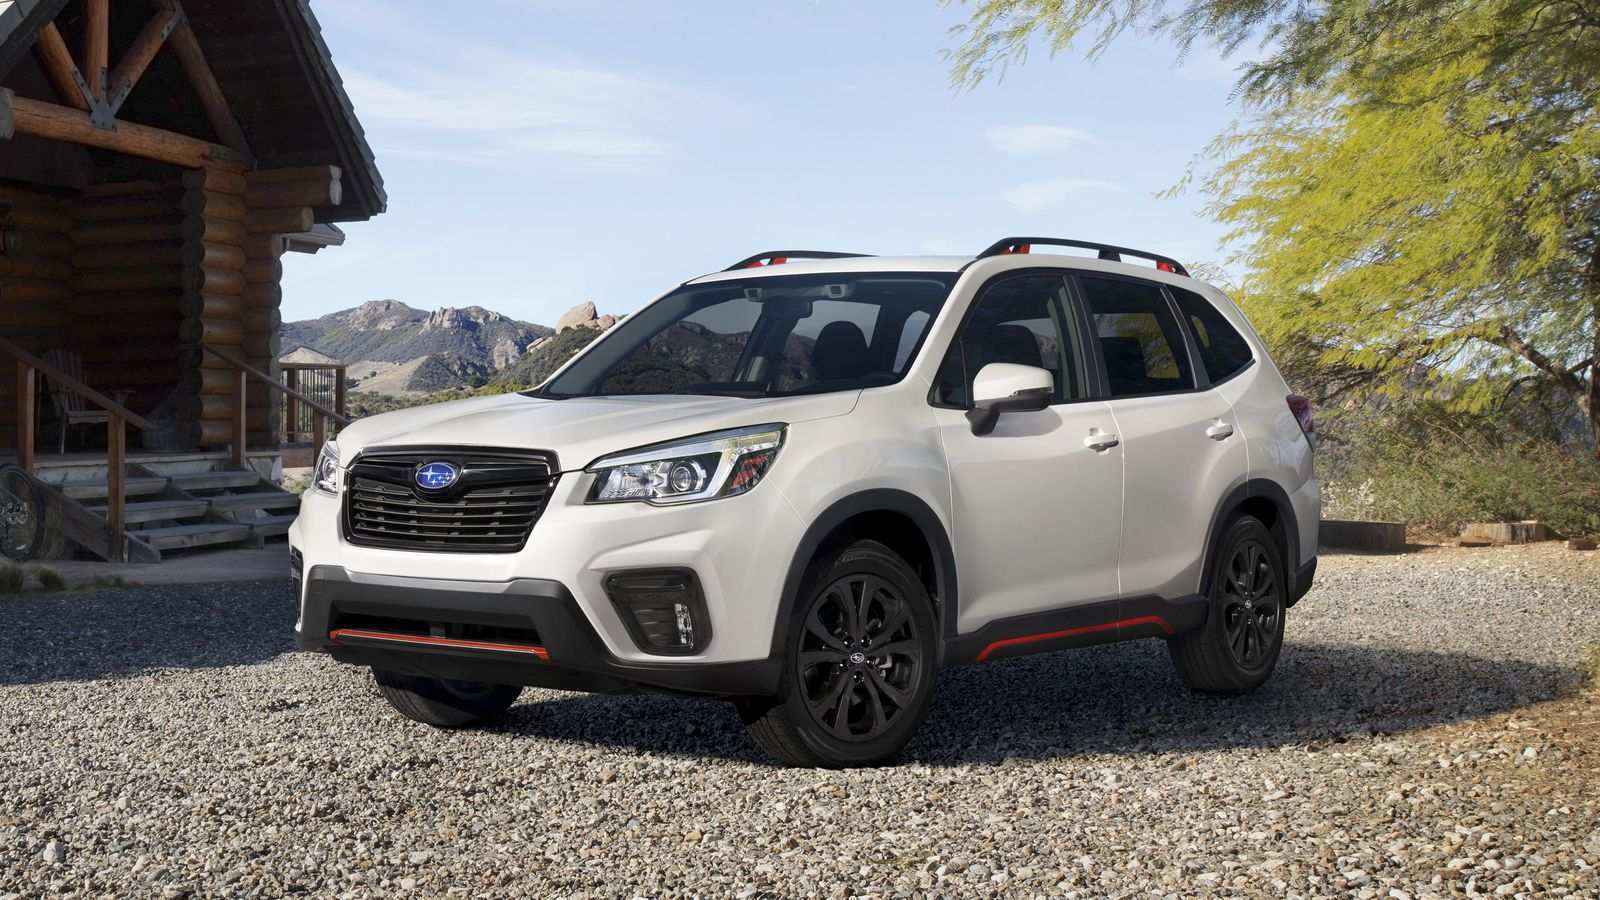 44 Gallery of 2019 Subaru Forester Sport Overview with 2019 Subaru Forester Sport